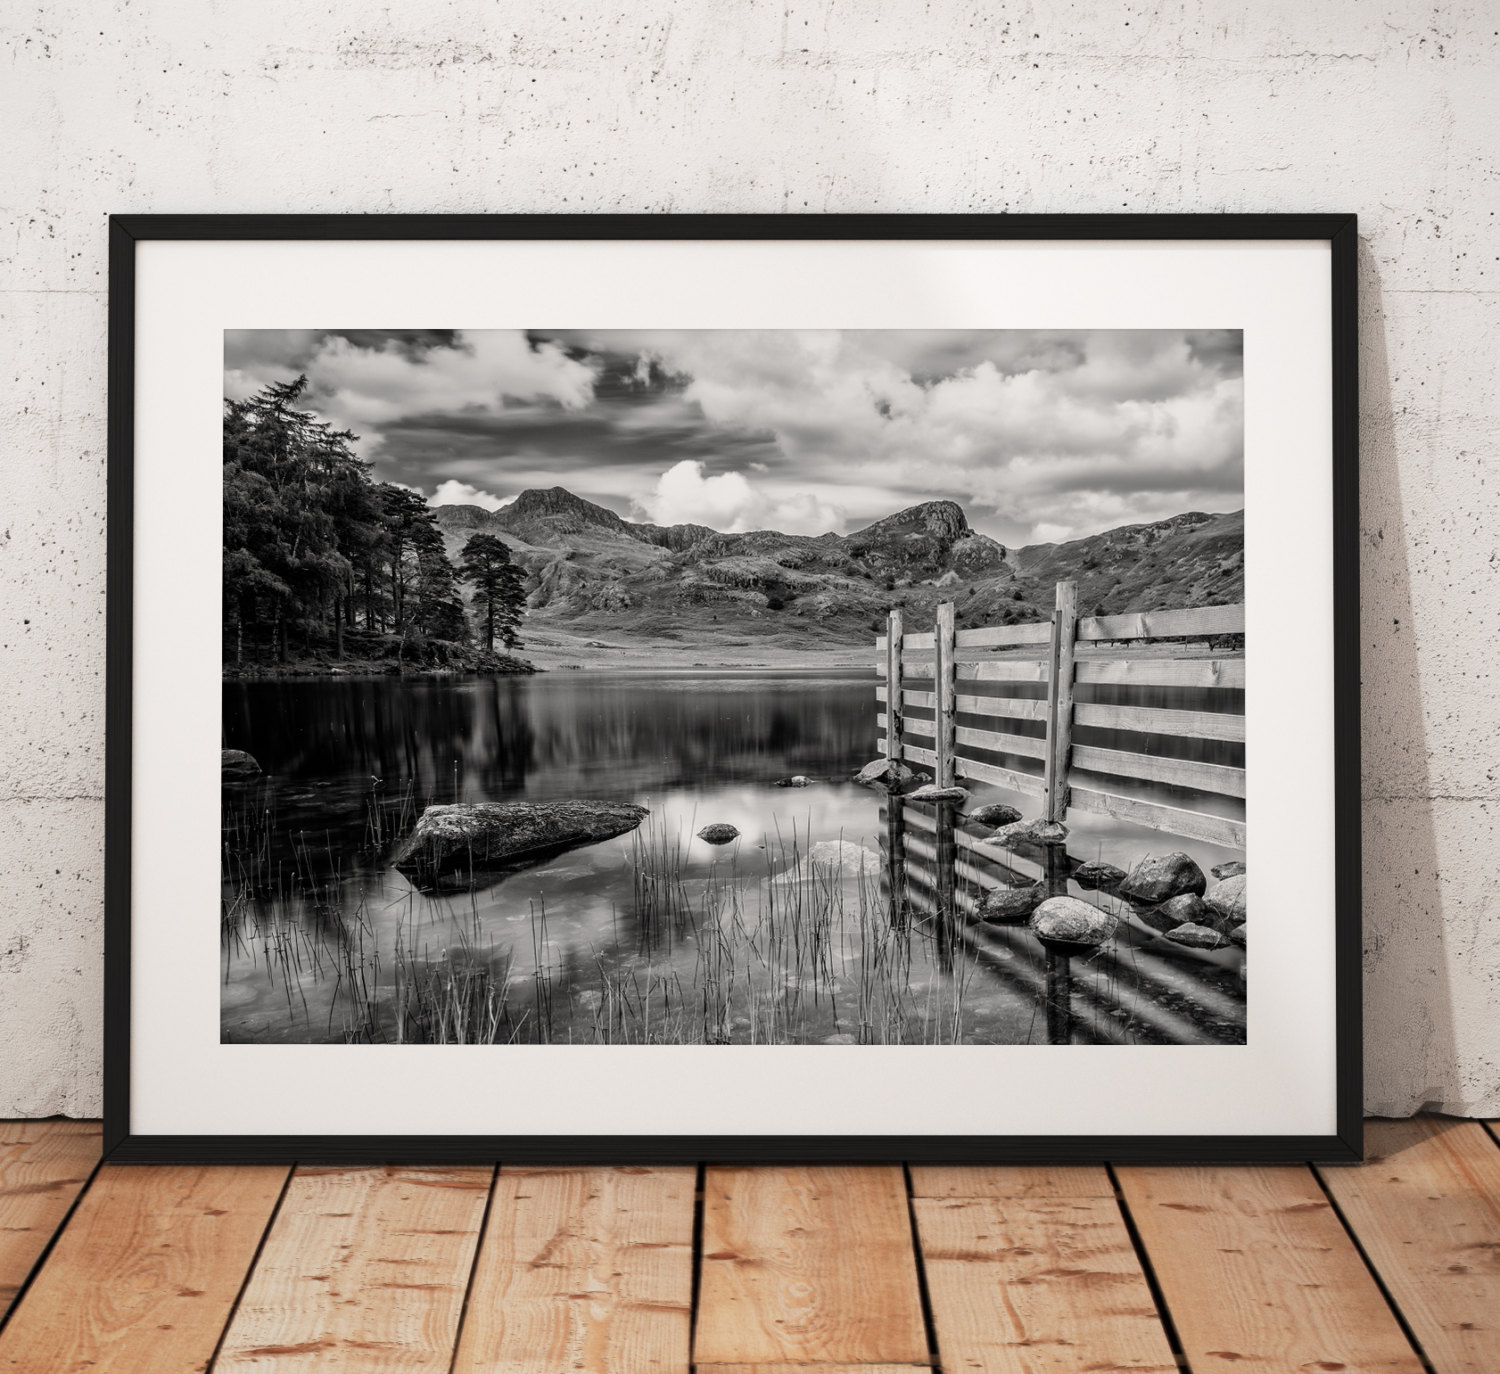 Blea tarn view towards great langdale mountains lake district cumbria england landscape